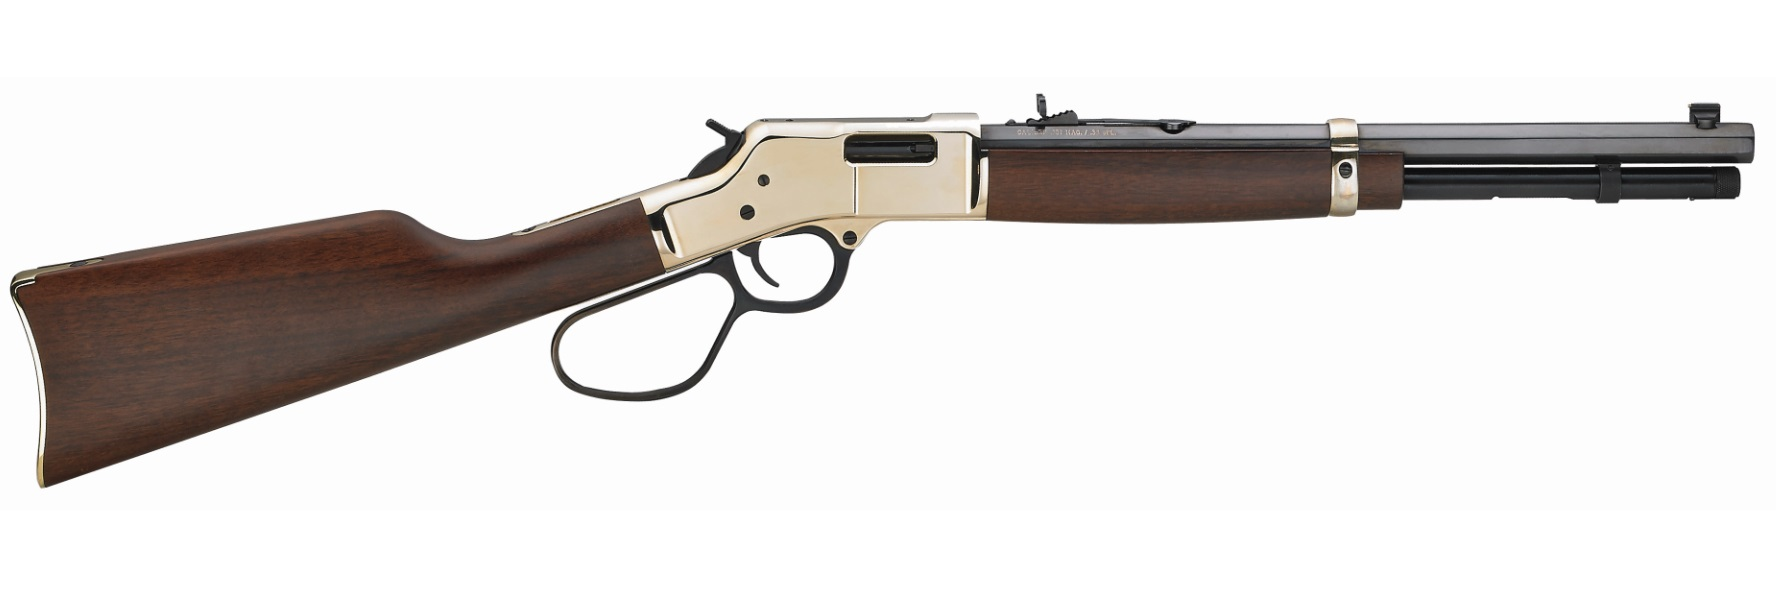 Henry Repeating Arms Big Boy Carbine 41 Magnum